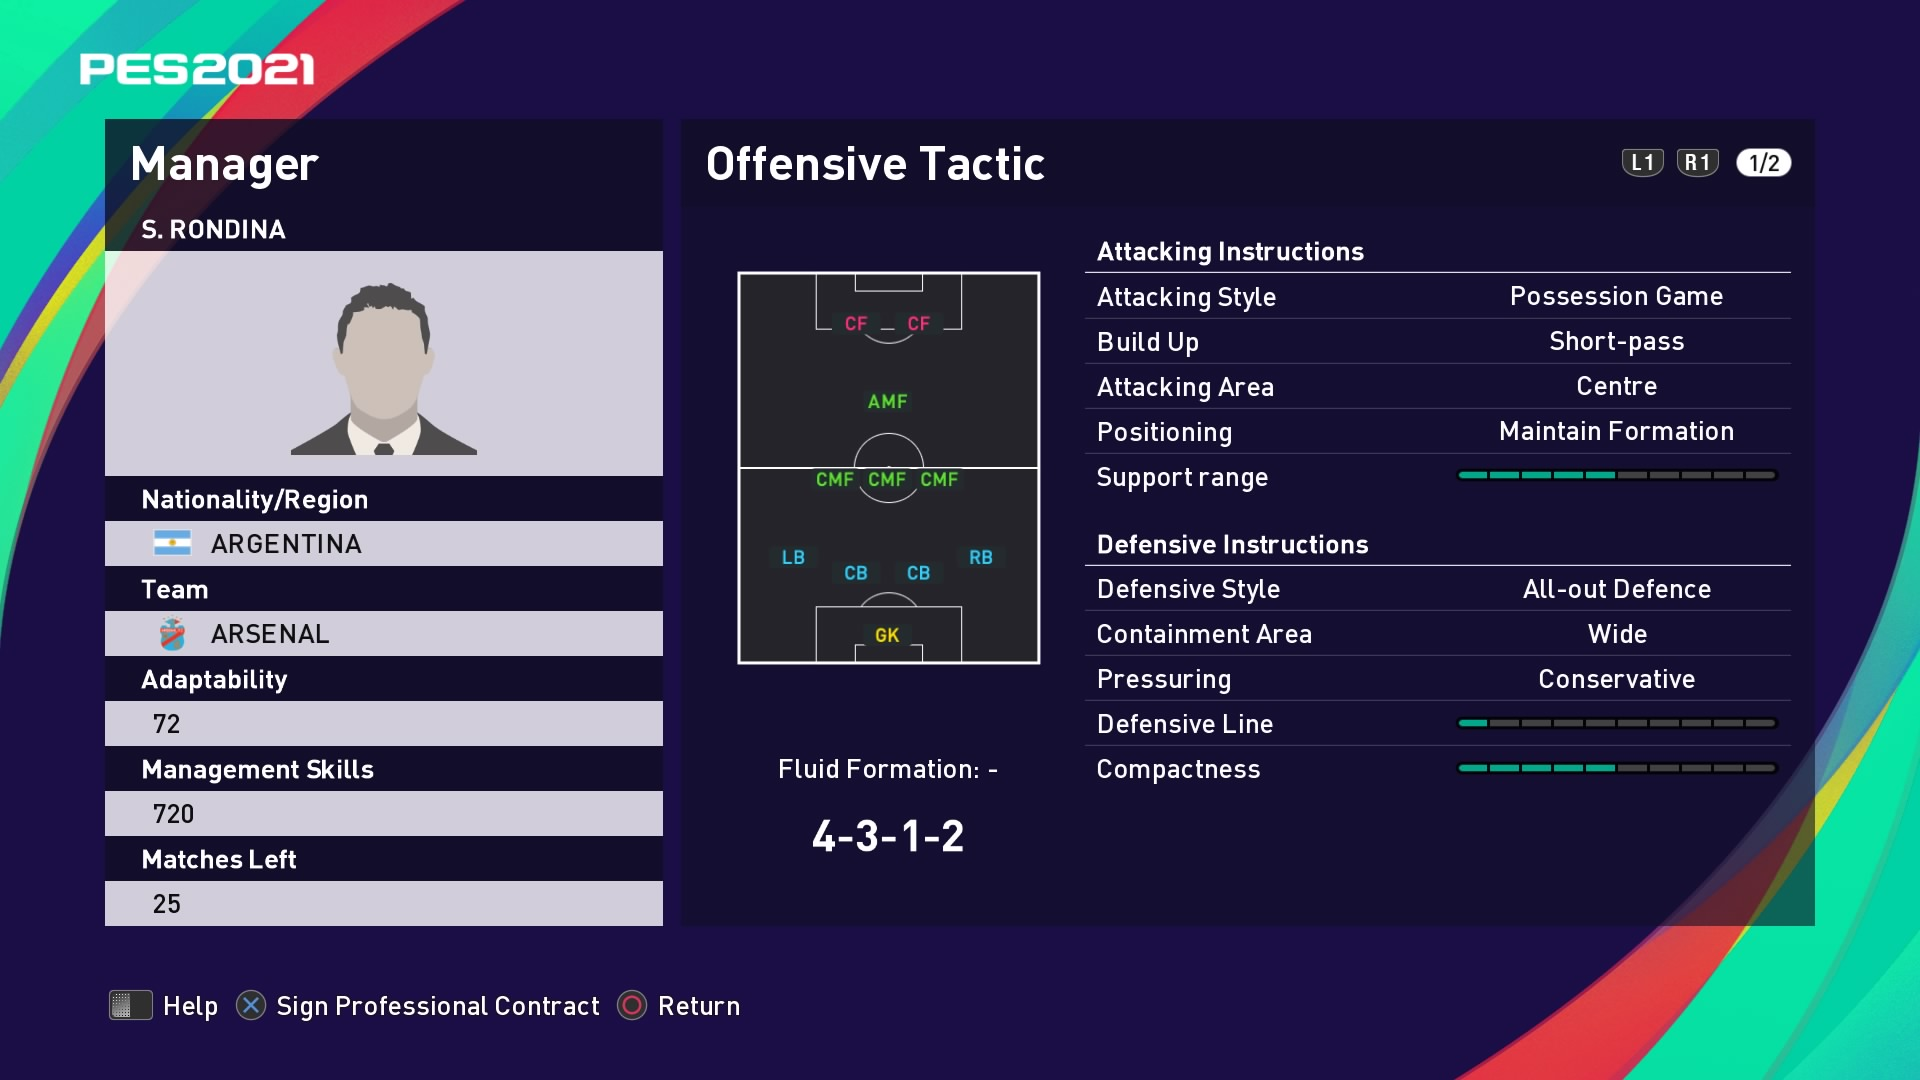 S. Rondina (Sergio Rondina) Offensive Tactic in PES 2021 myClub